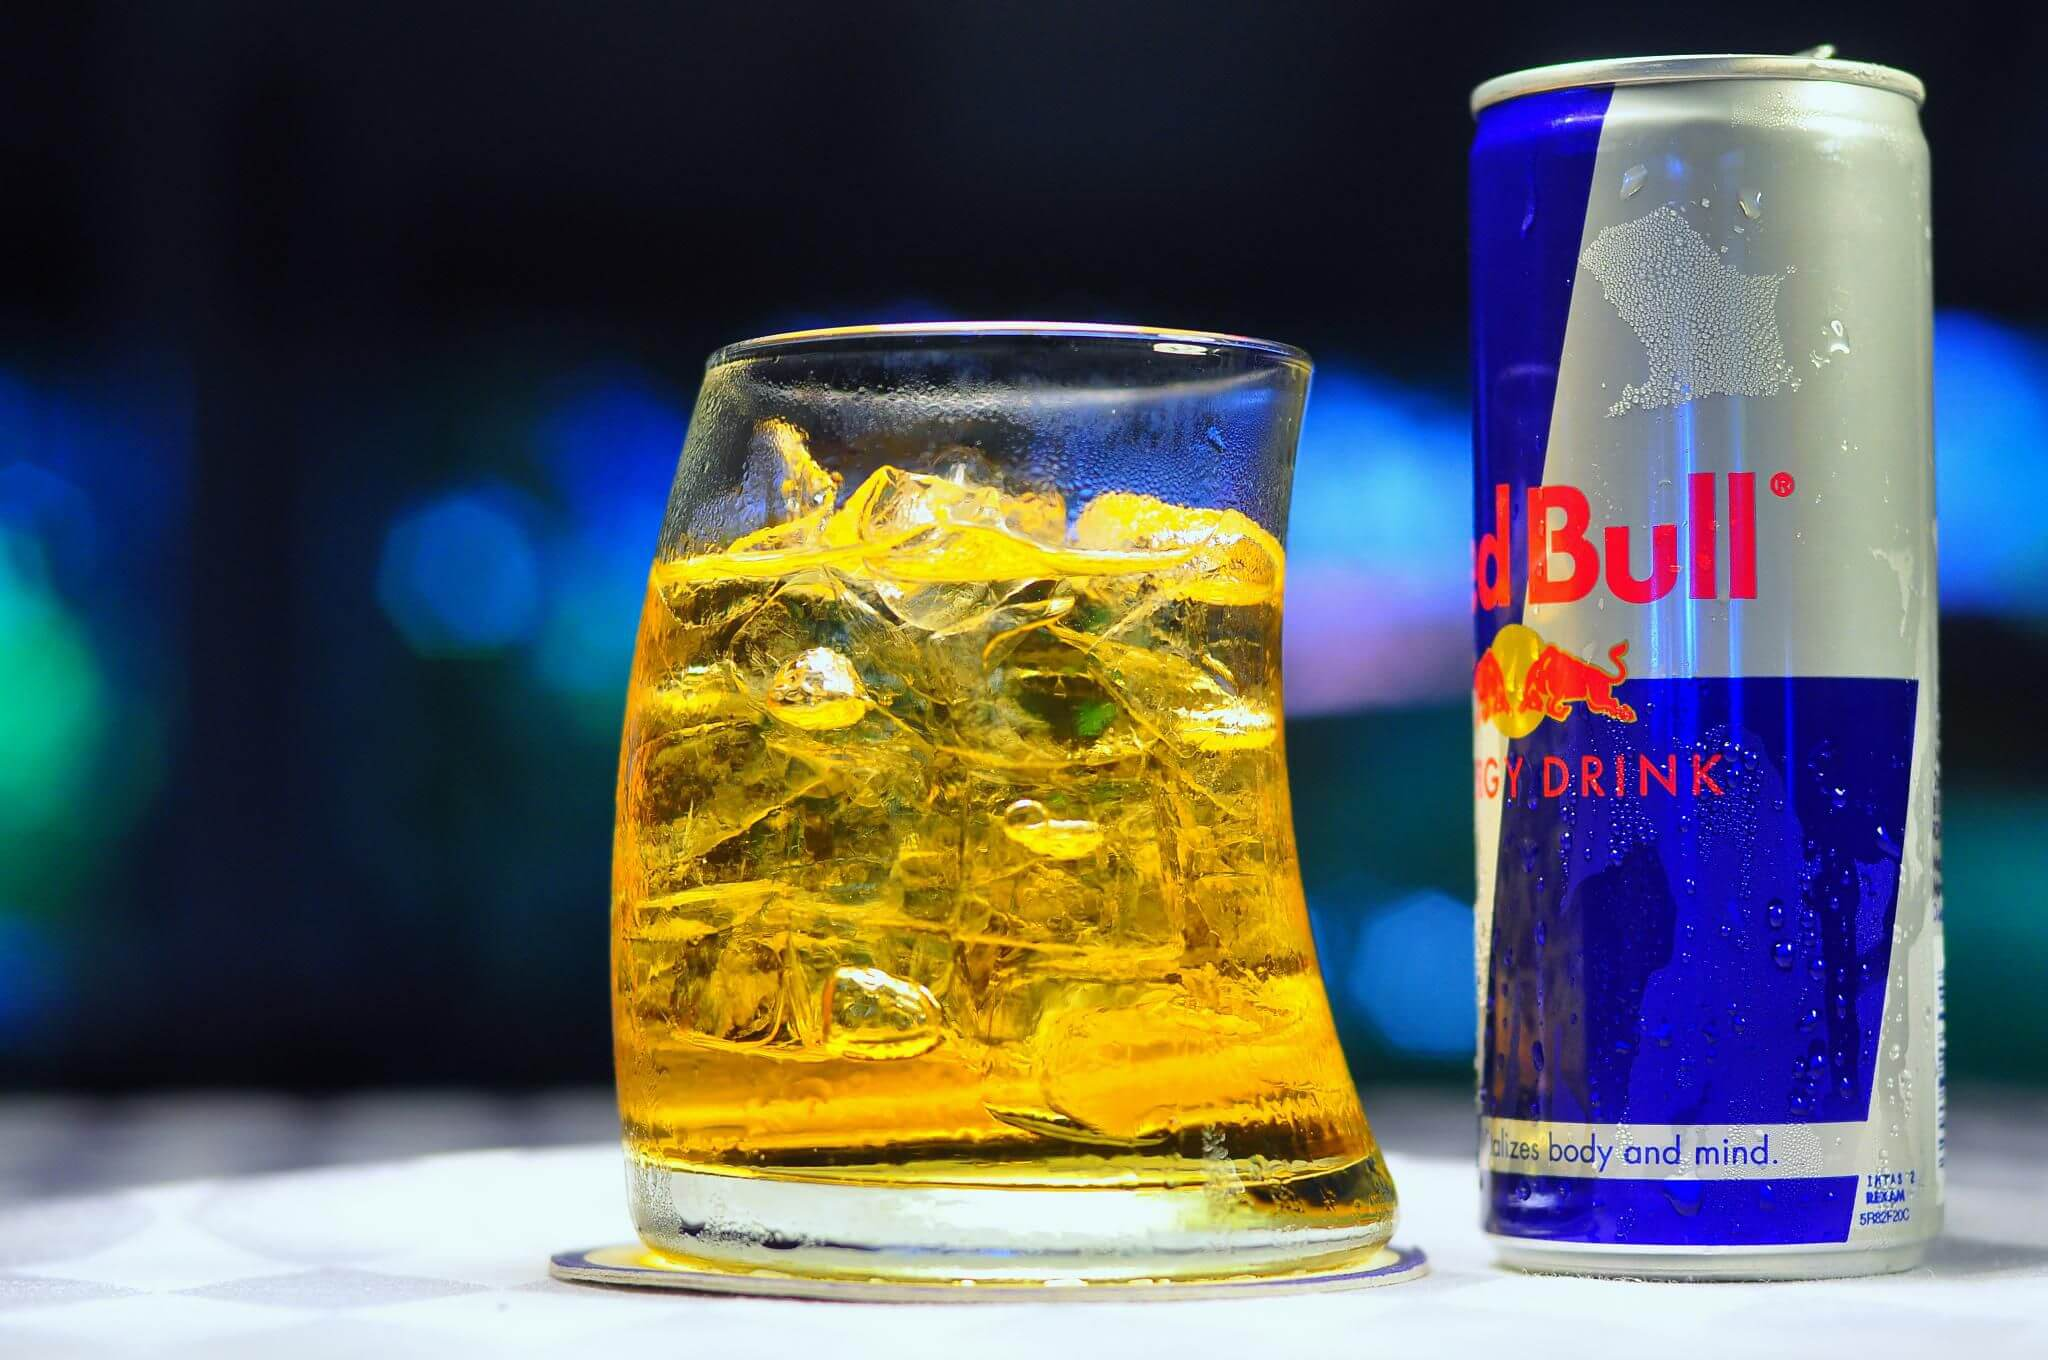 Which of the following is true about energy drinks and mixers: